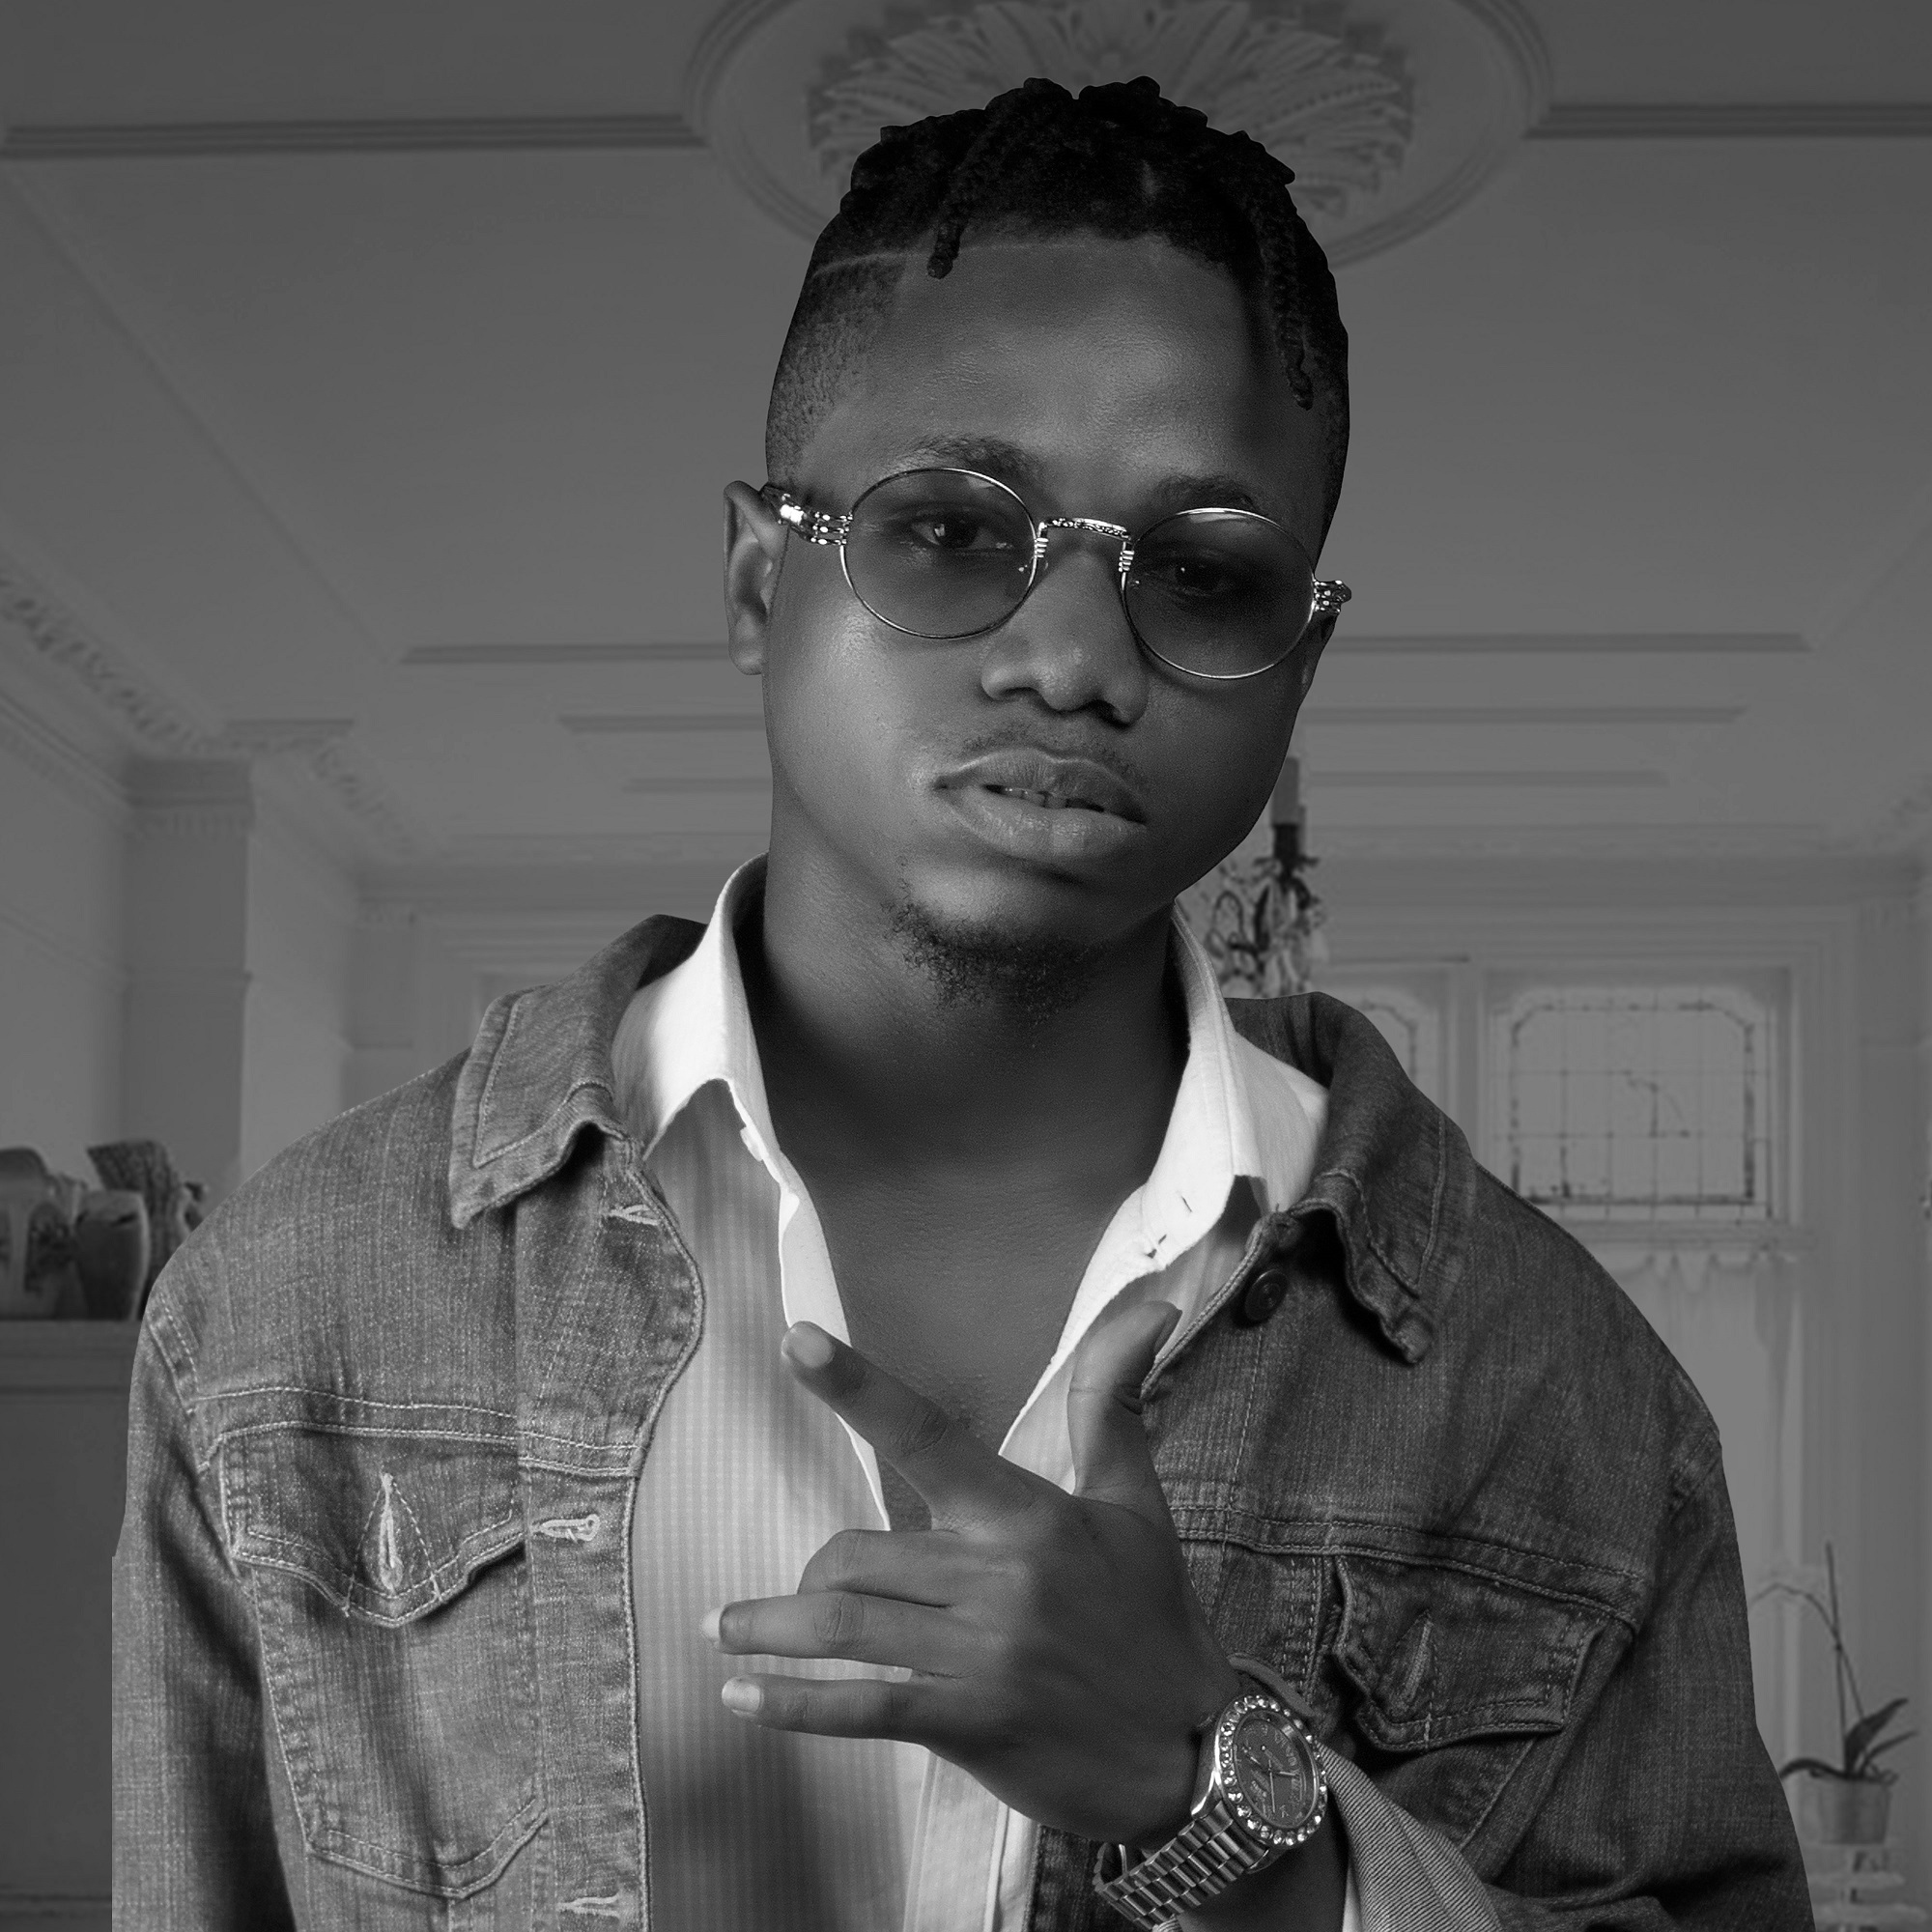 """Celebrity Gist: Please you guys should raise funds for me to shoot a video for my single """"THE INDUSTRY"""" - Independent Artist """"Hotice Exclusive"""" Begs his fans"""